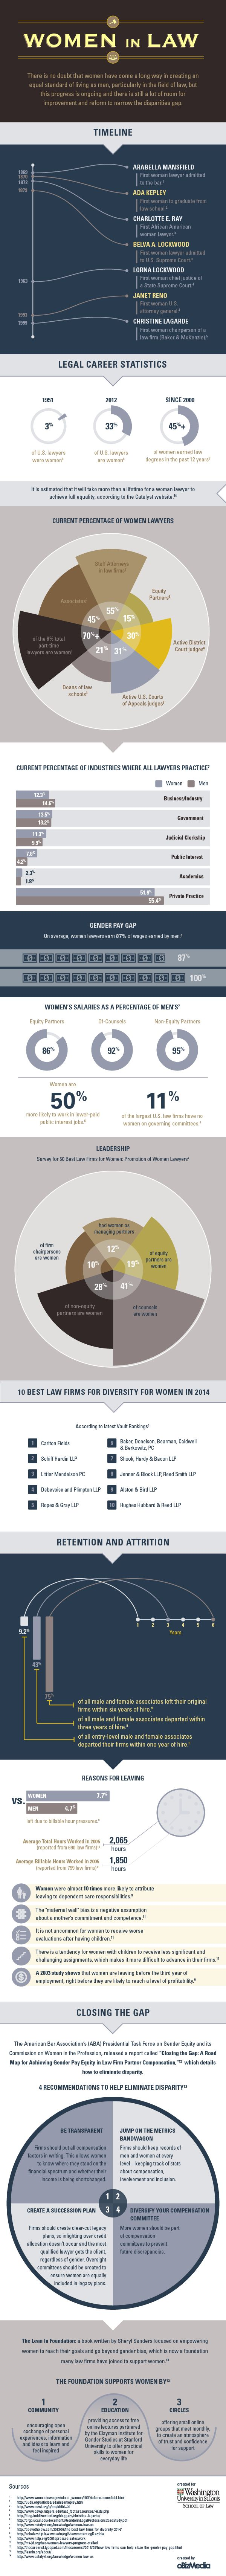 This infographic provides the history of women in law and will provide me with role models for my future career.